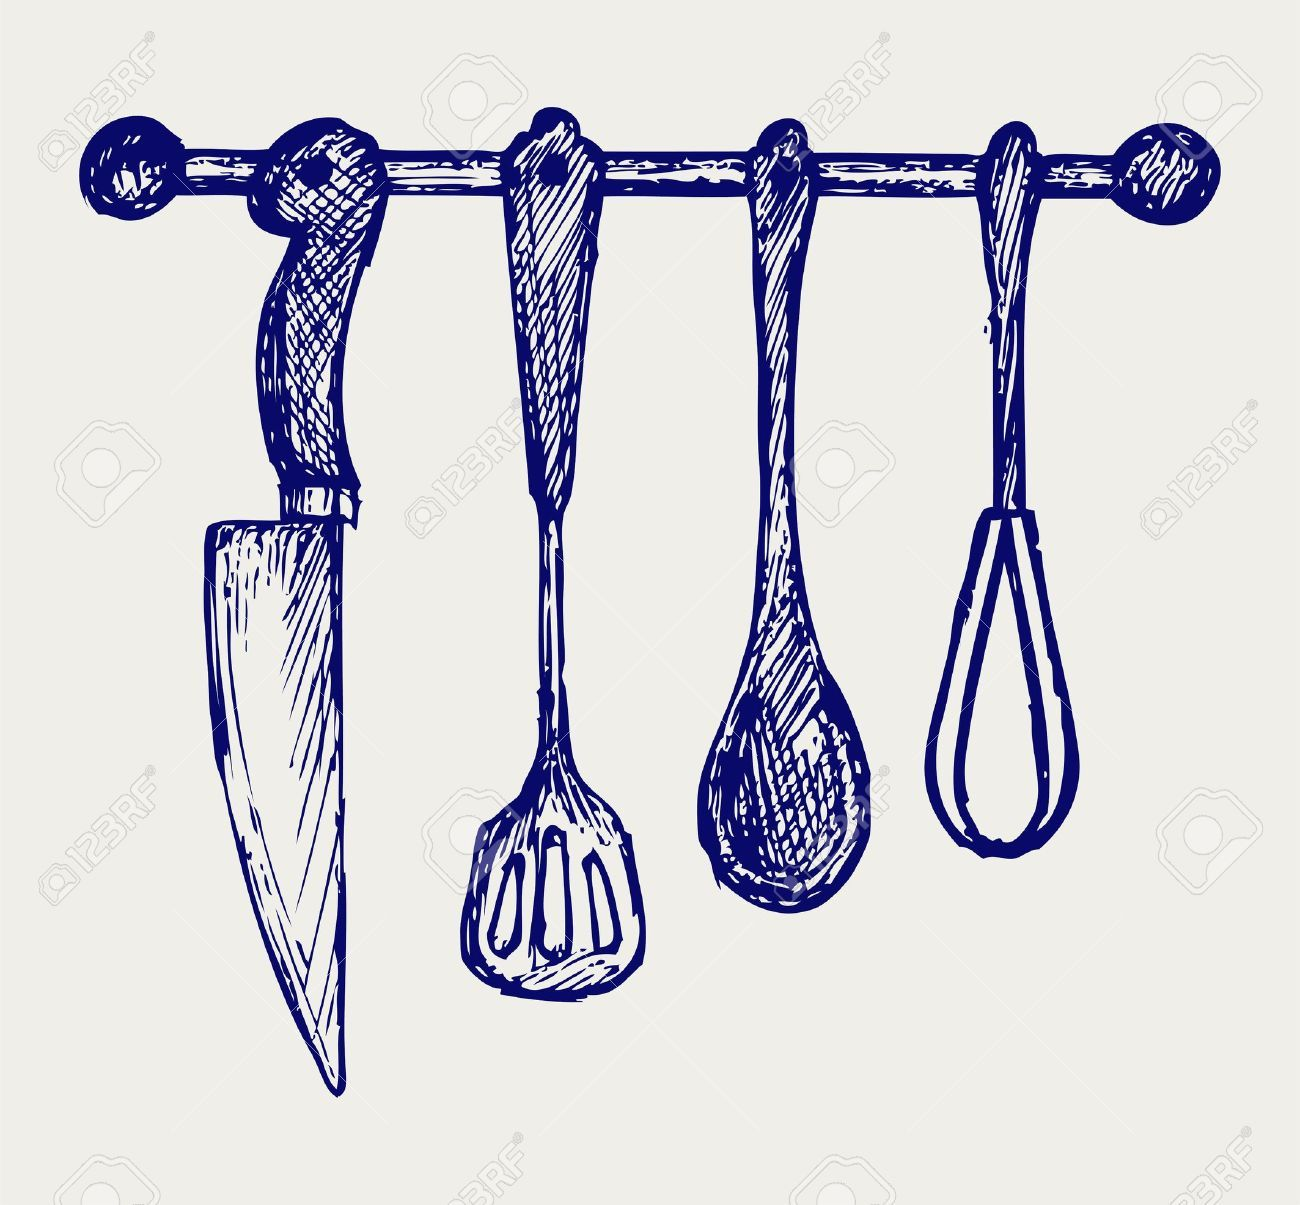 Kitchen Utensils Drawing Kitchen Utensils And Appliances Isolated ...